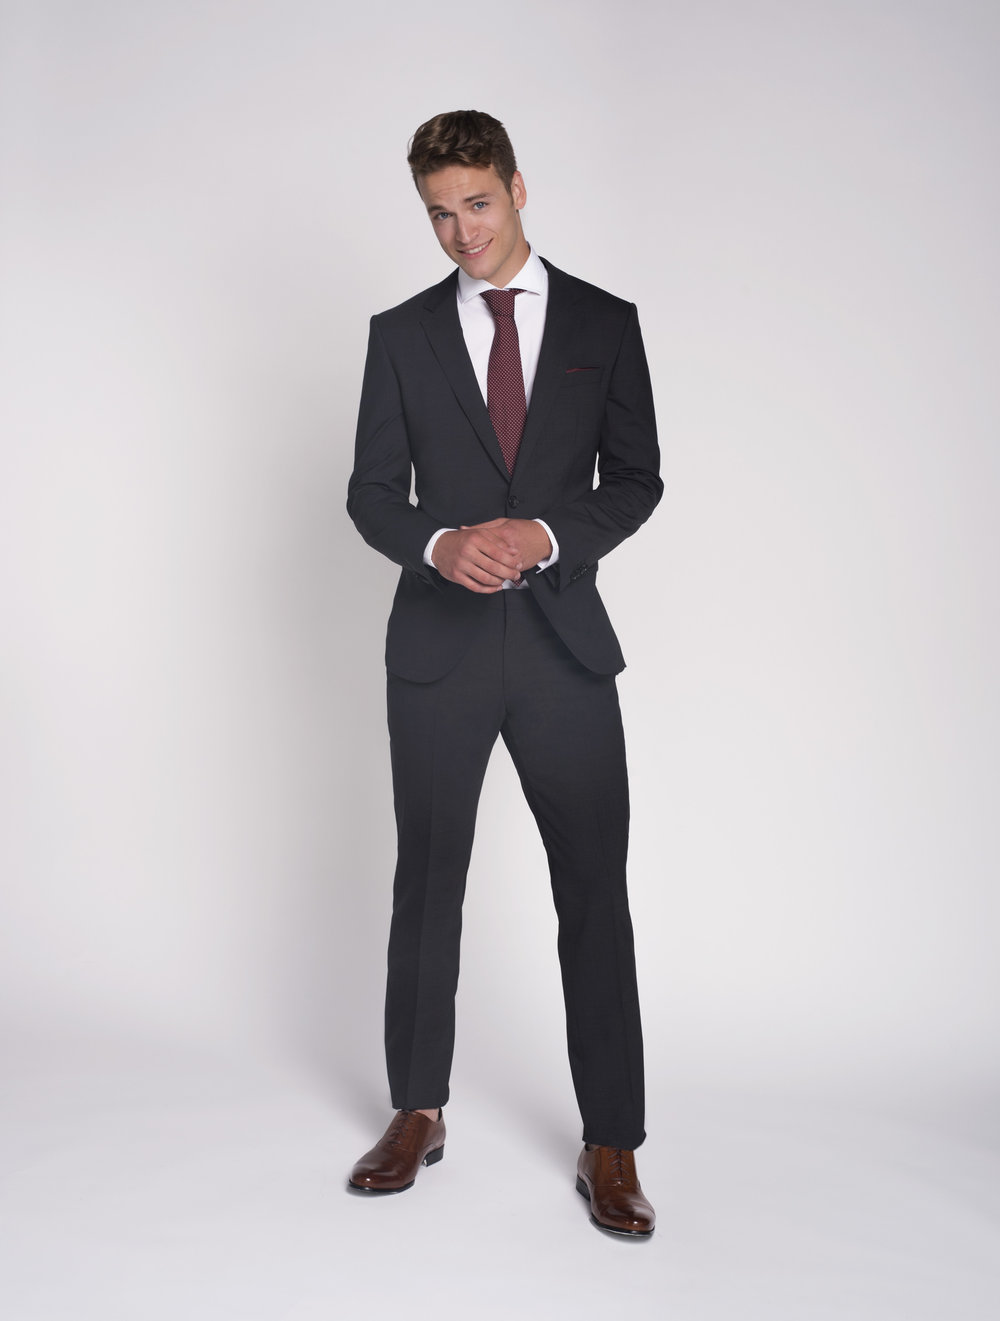 what to wear for a job interview business professional